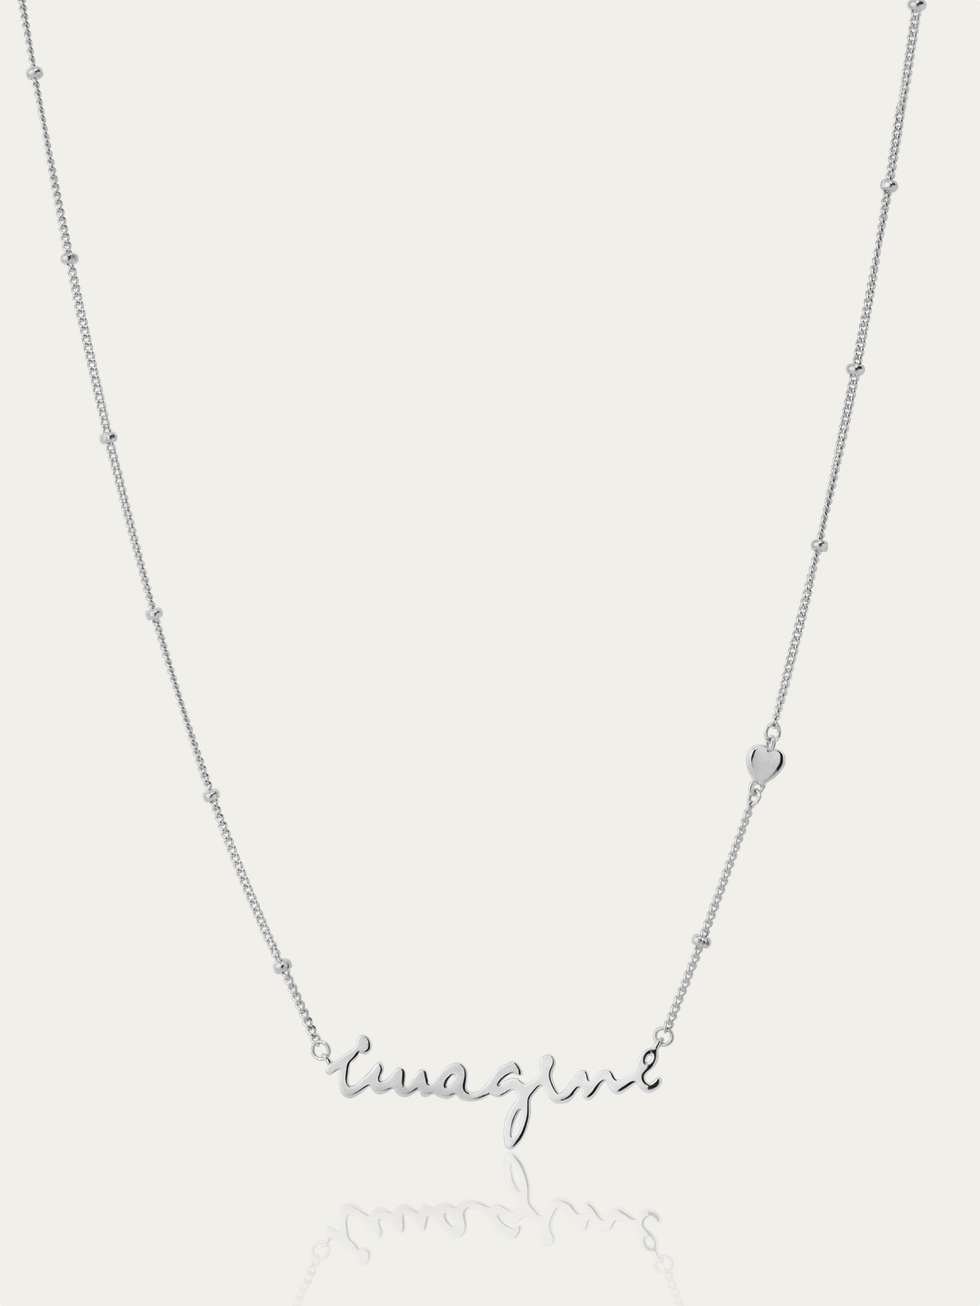 IMAGINE silver necklace